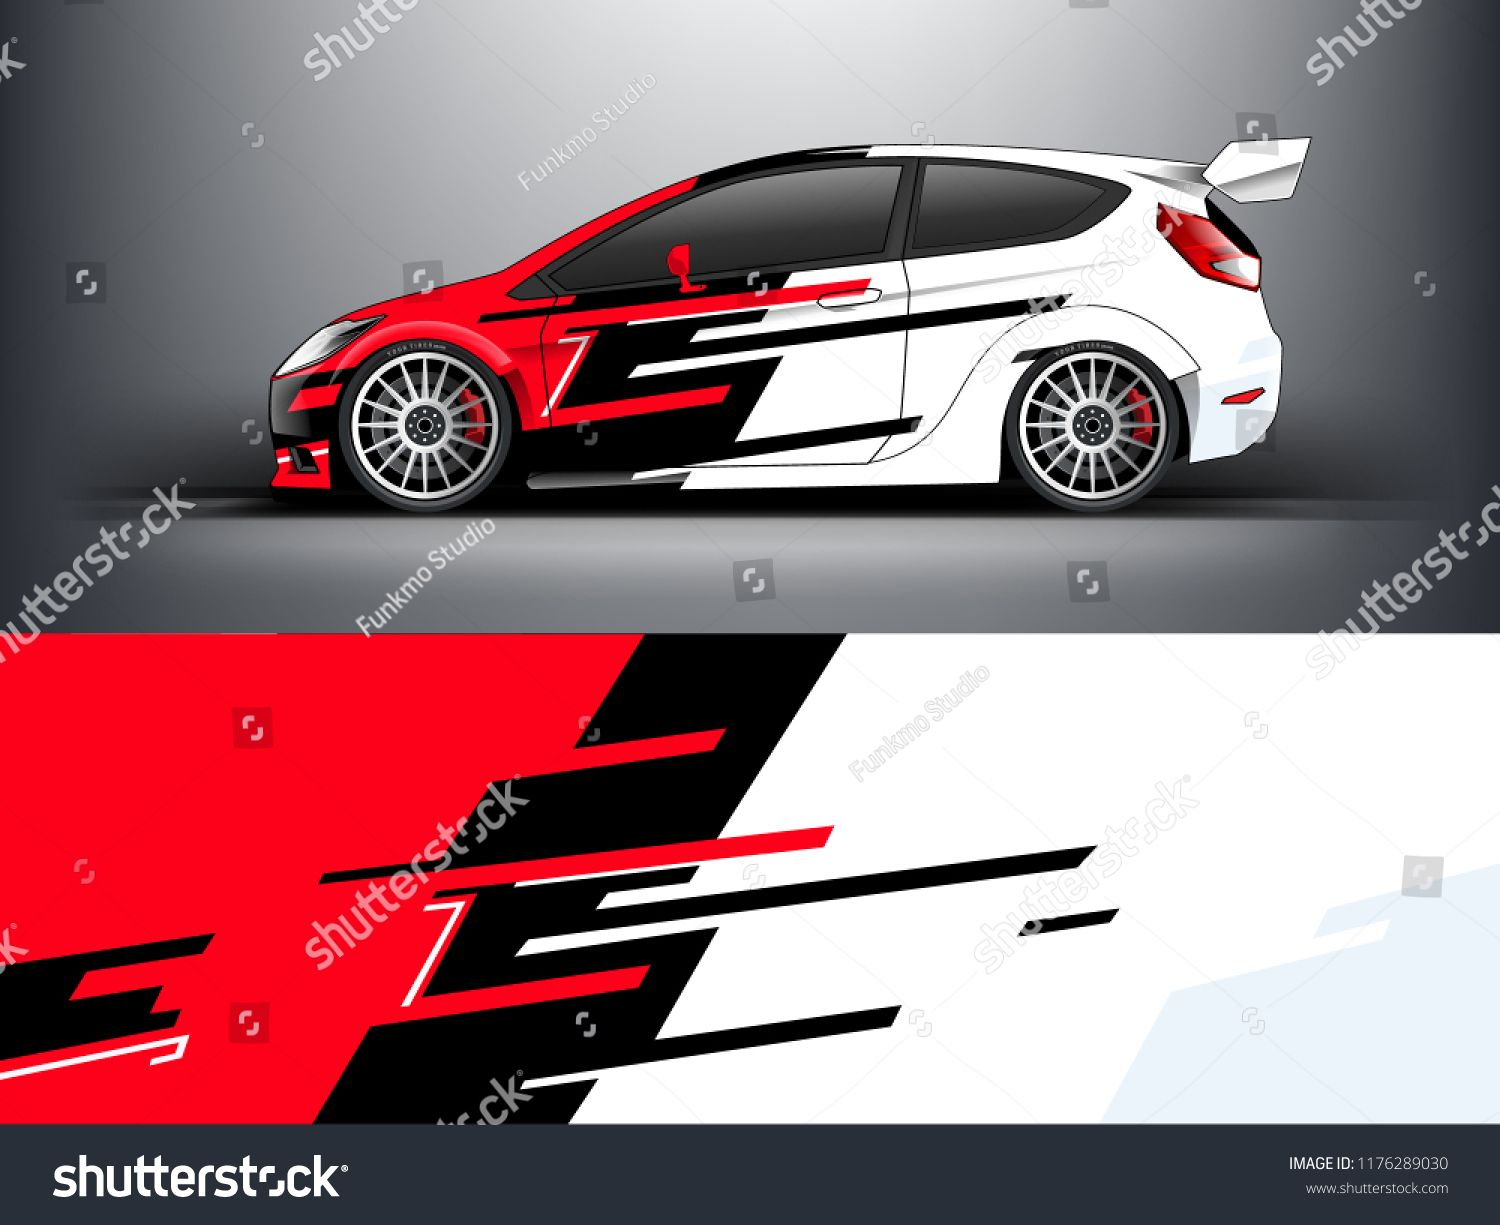 Racing car wrap red abstract strip for racing car wrap sticker and decal vector eps 10 format